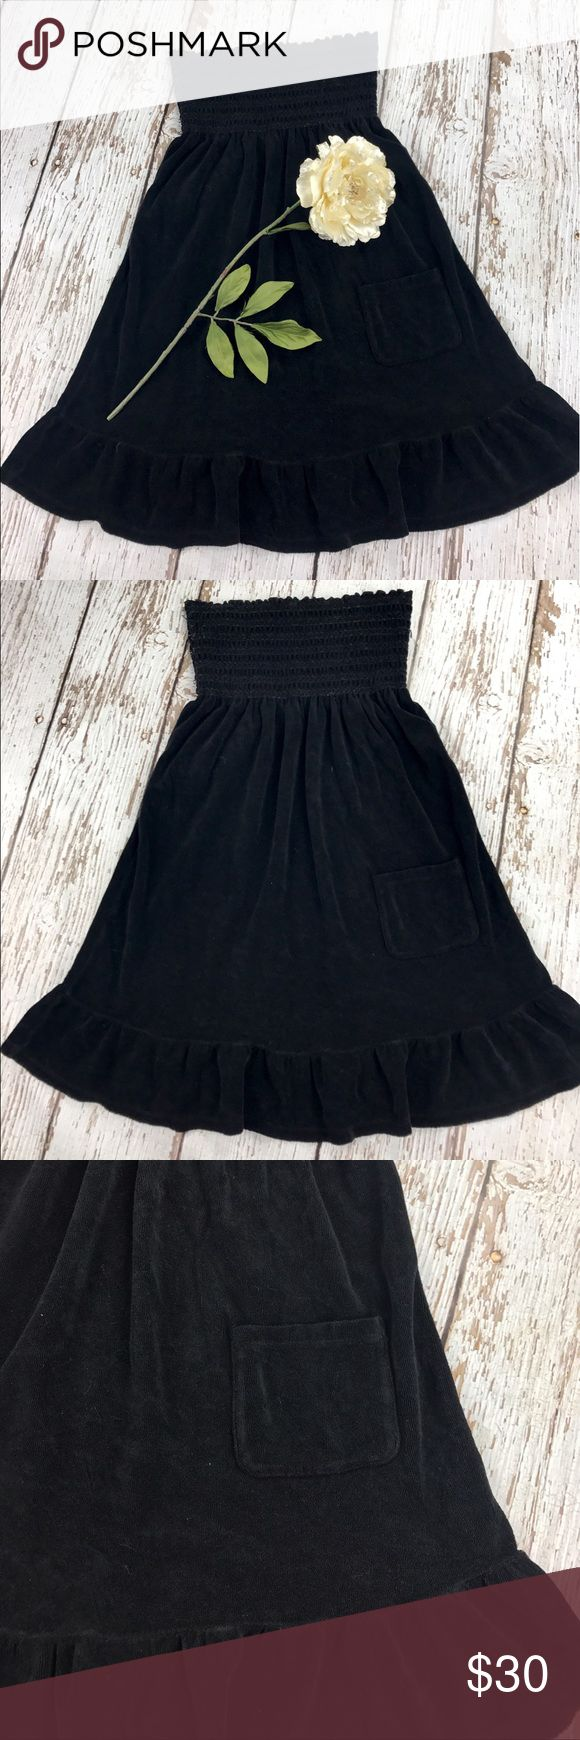 """💕SALE💕Juicy Couture Black Terry Dress Fantastic 💕Juicy Couture Black Terry Dress with pocket 80% Cotton 20% Polyester 28"""" from the top of the shoulder to the bottom Perfect Beach Coverup or Relaxing Weekend Dress Juicy Couture Dresses"""